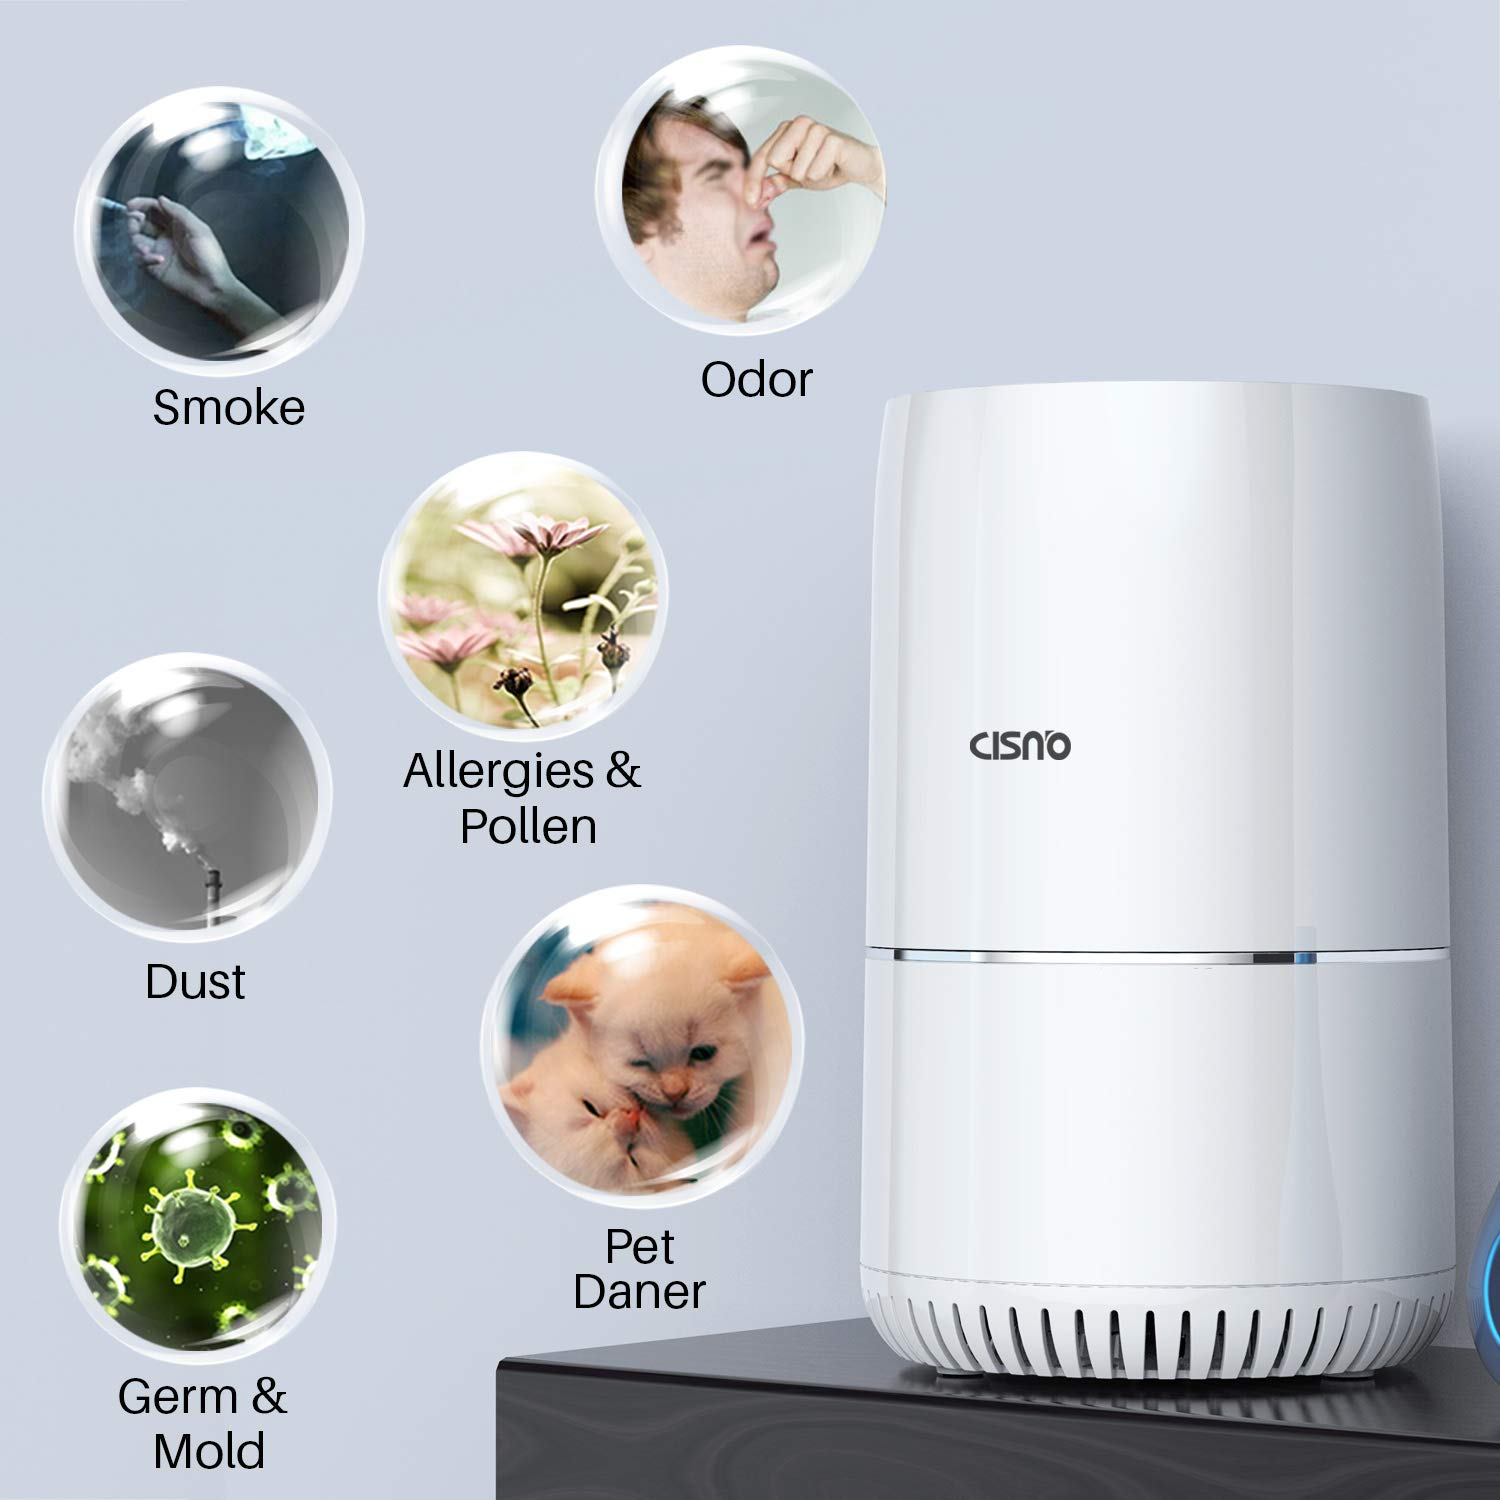 CISNO Air Purifier 3 Stage True HEPA Filter allergies Info